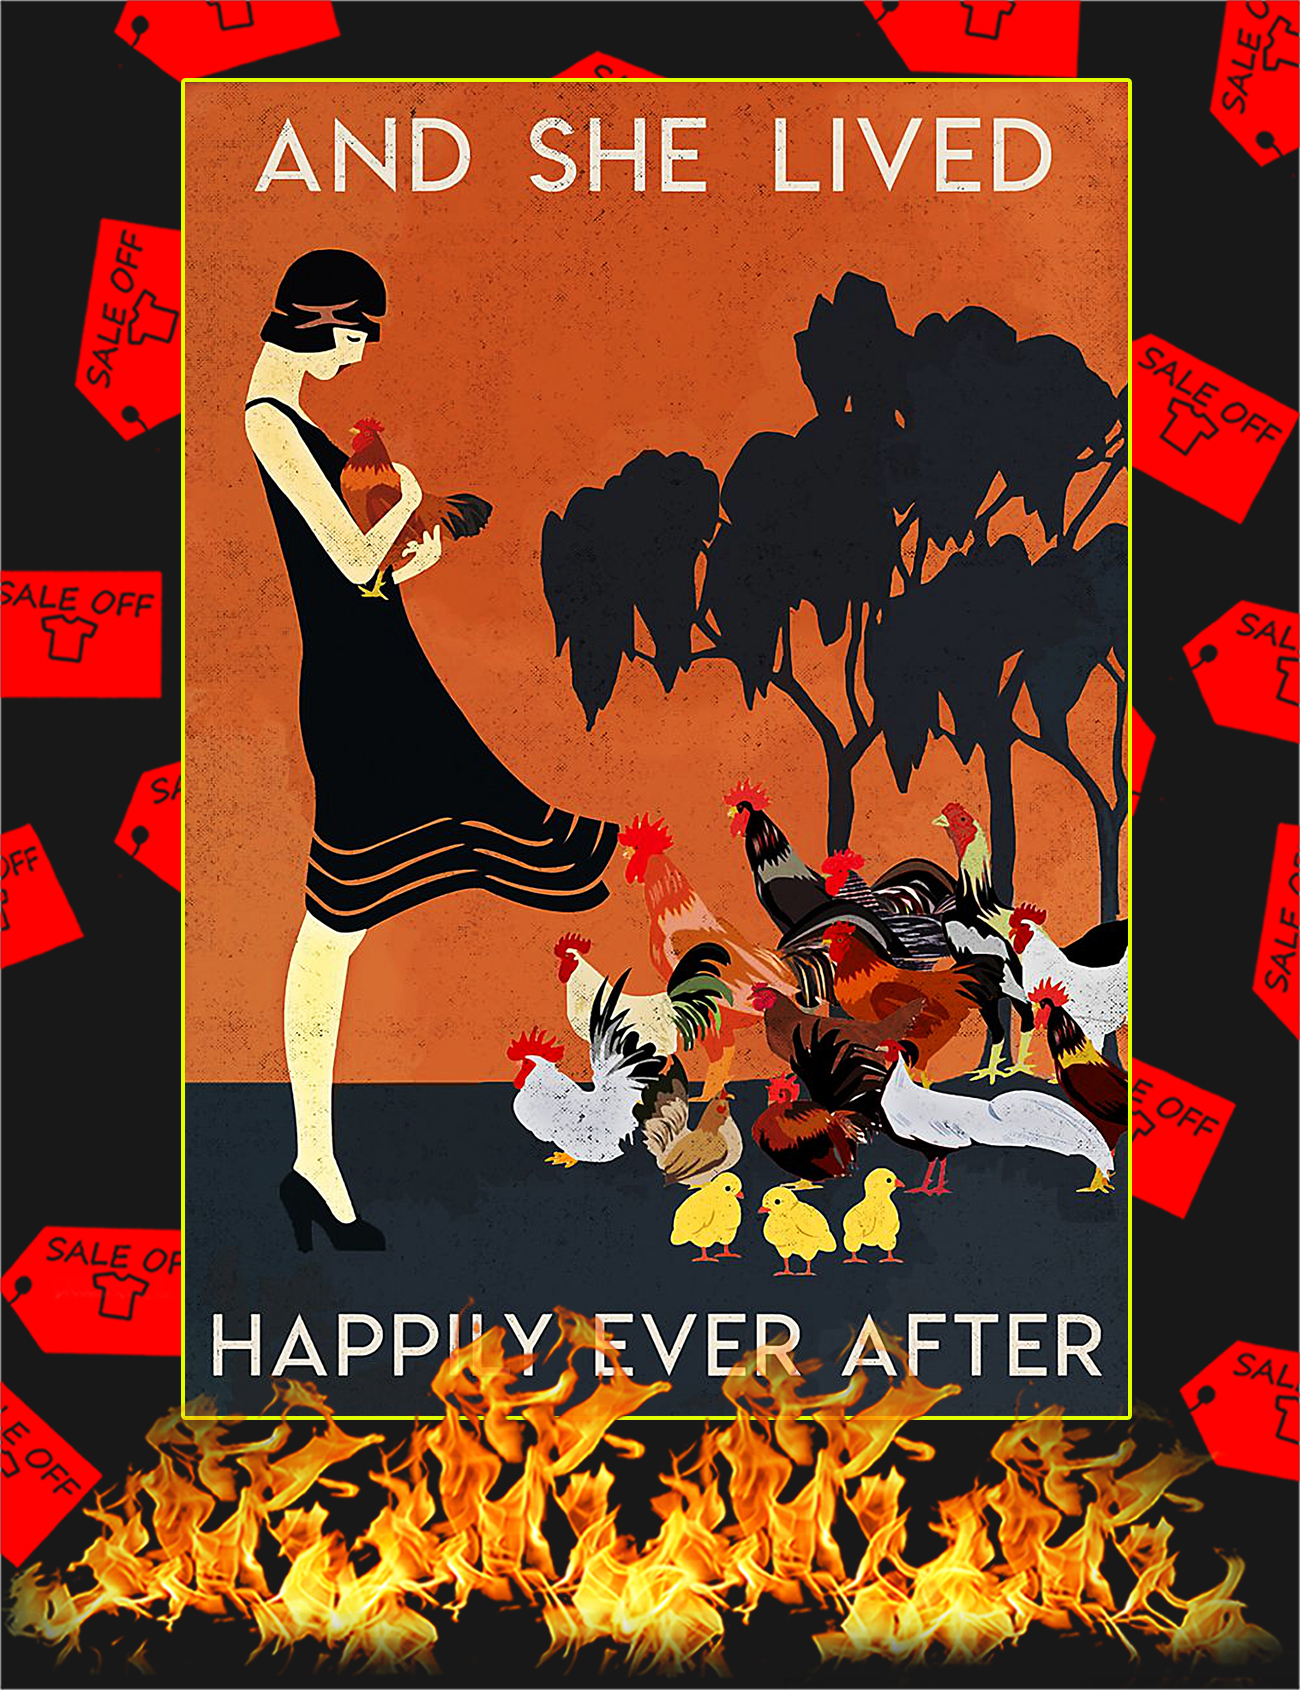 Chicken And she lived happily ever after poster - A4